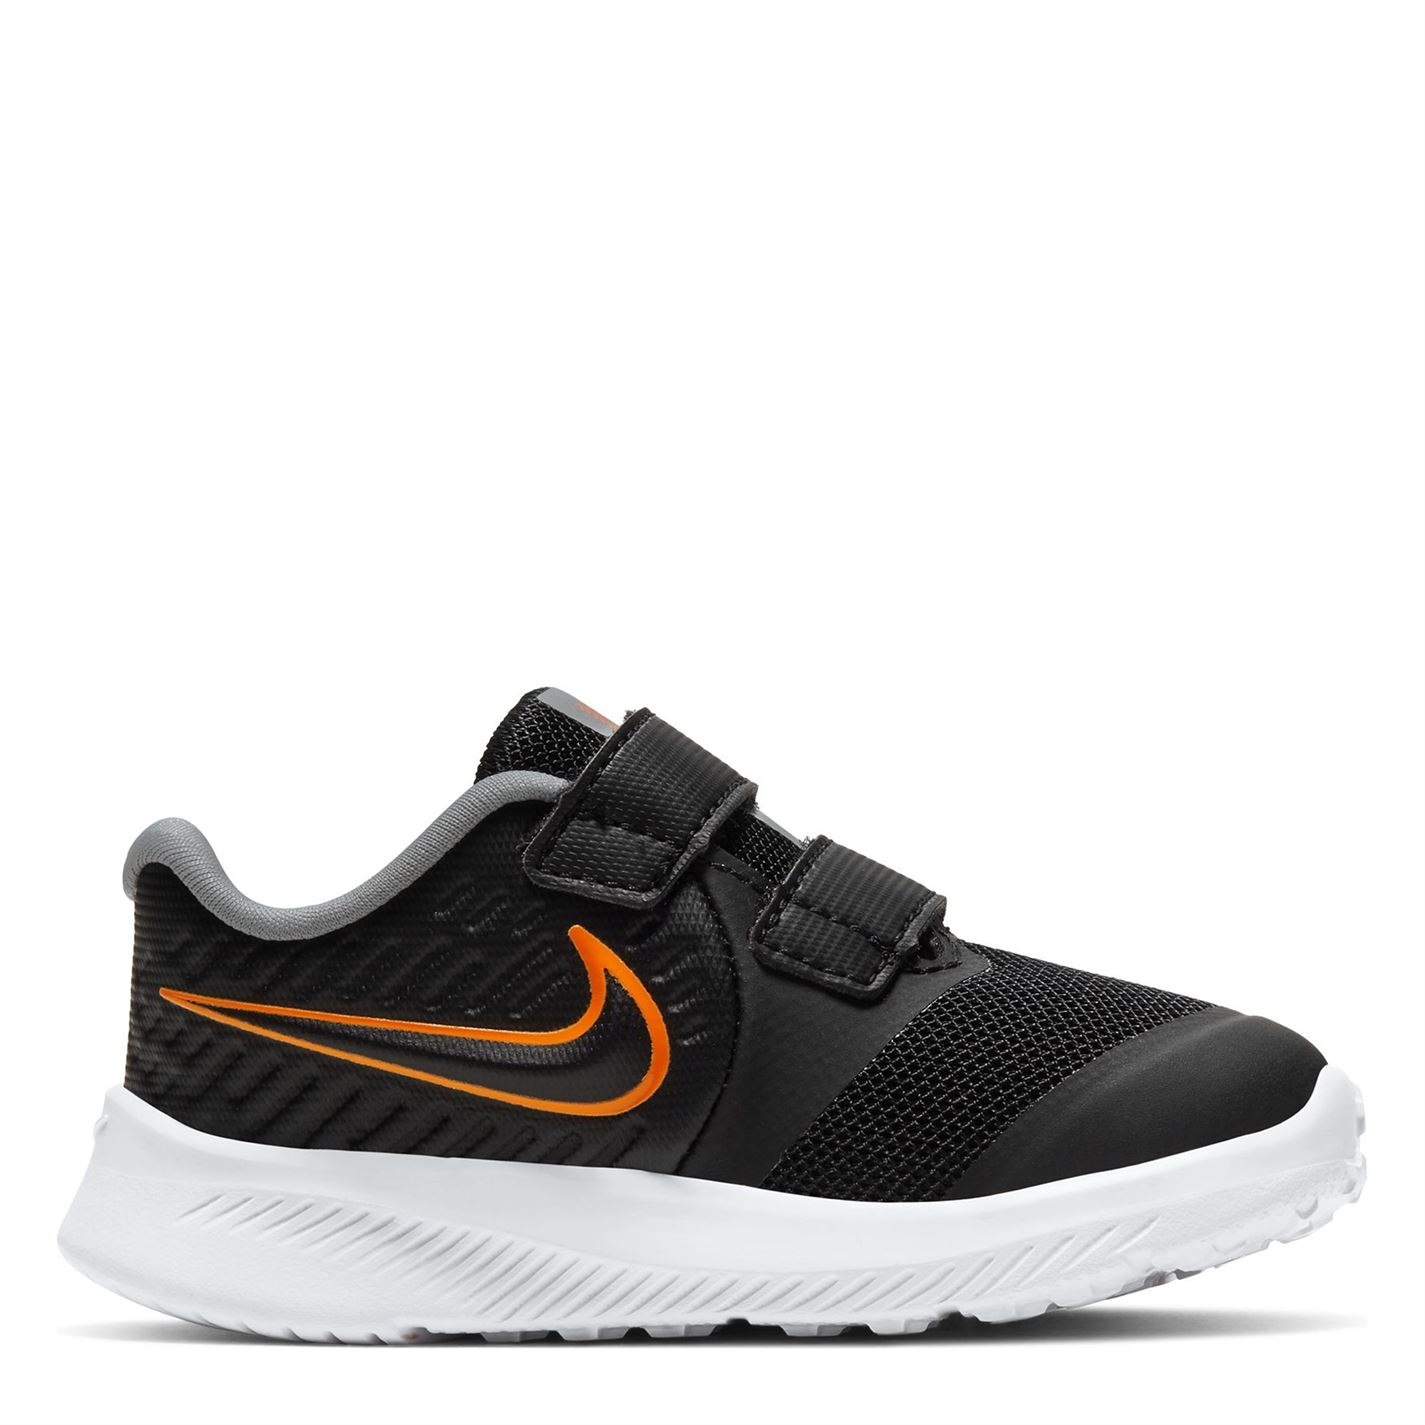 Nike Star Runner 2 Baby/Toddler Shoe Black/Orange